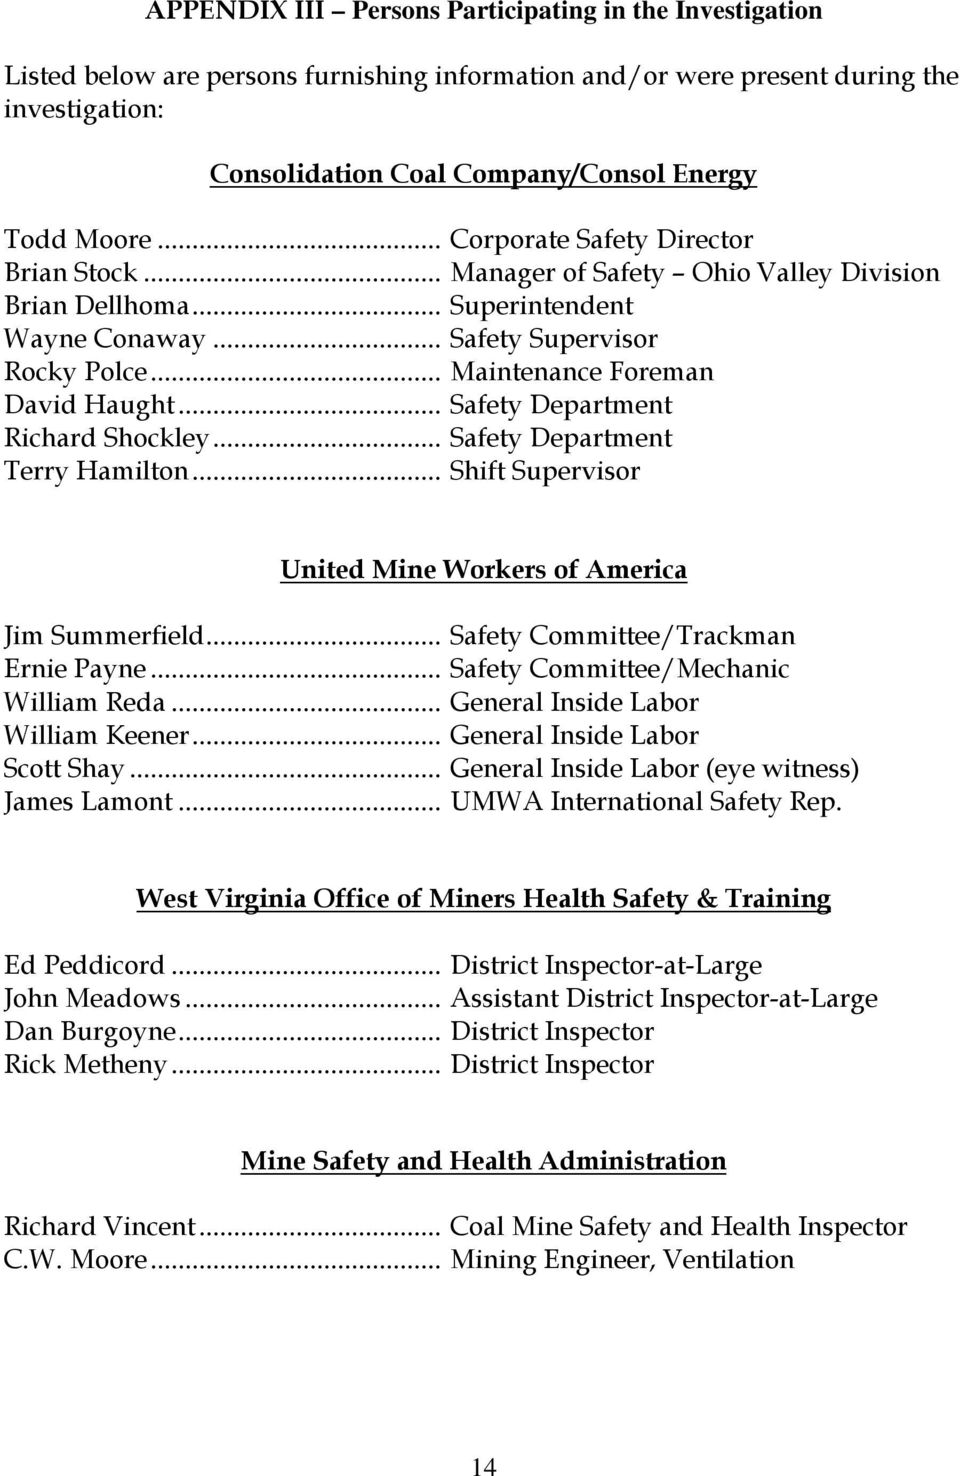 UNITED STATES DEPARTMENT OF LABOR MINE SAFETY AND HEALTH